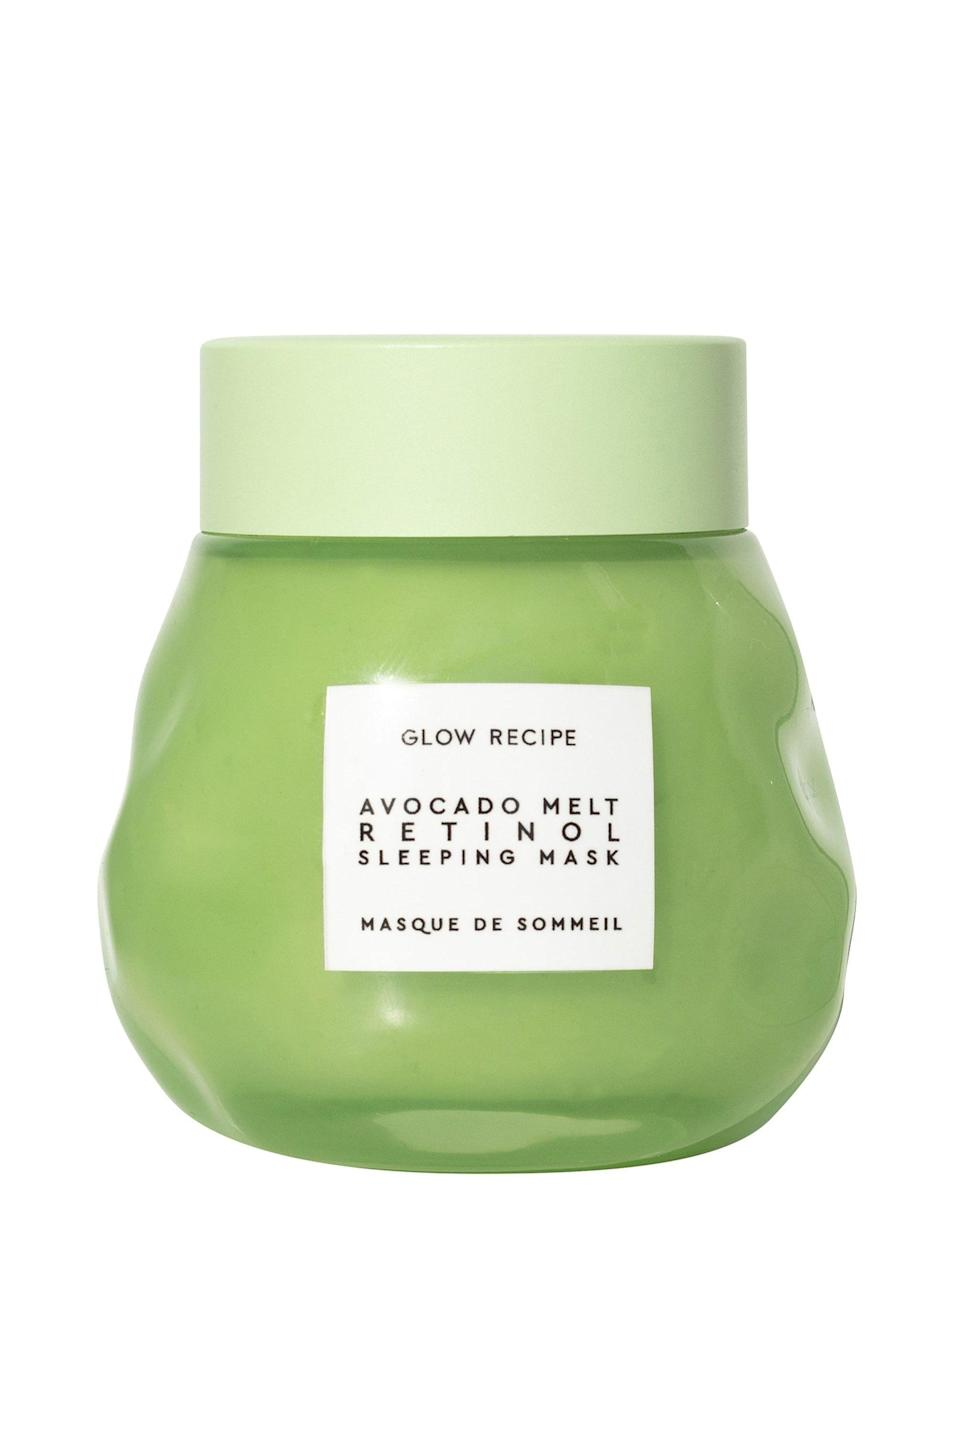 """<p><strong>Glow Recipe</strong></p><p>sephora.com</p><p><strong>$49.00</strong></p><p><a href=""""https://go.redirectingat.com?id=74968X1596630&url=https%3A%2F%2Fwww.sephora.com%2Fproduct%2Favocado-melt-retinol-sleeping-mask-P449160&sref=https%3A%2F%2Fwww.marieclaire.com%2Fbeauty%2Fg33597196%2Fbest-retinol-creams%2F"""" rel=""""nofollow noopener"""" target=""""_blank"""" data-ylk=""""slk:Shop Now"""" class=""""link rapid-noclick-resp"""">Shop Now</a></p><p>This creamy formula is meant to be the scrumptious last step in your night routine. Nutrient dense-avocado nourishes the skin while polyhydroxy acids gentle exfoliate for minimized pores and a smoother visage by morning. </p>"""